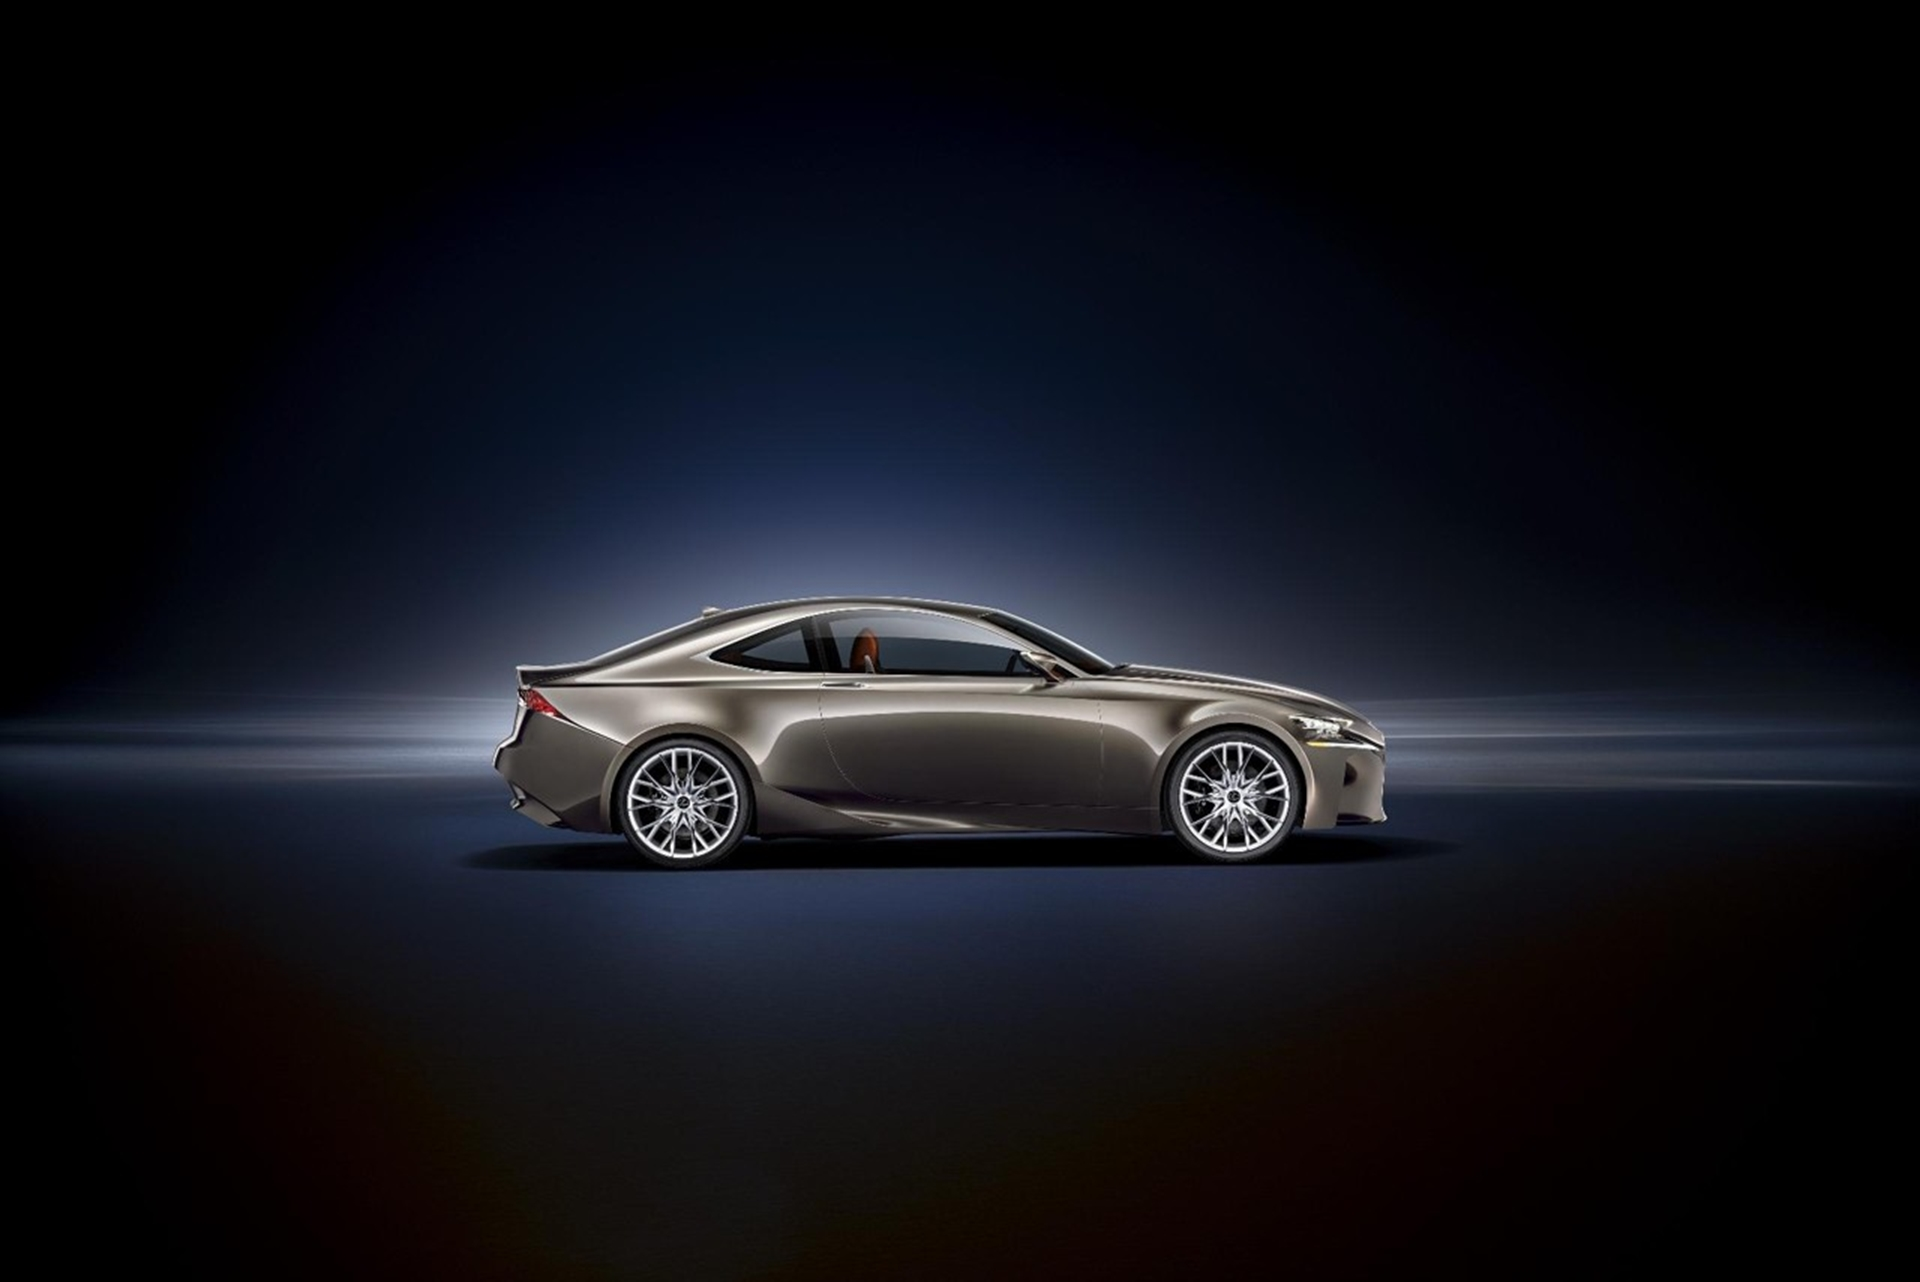 World Premiere Of Lexus LF-CC Concept